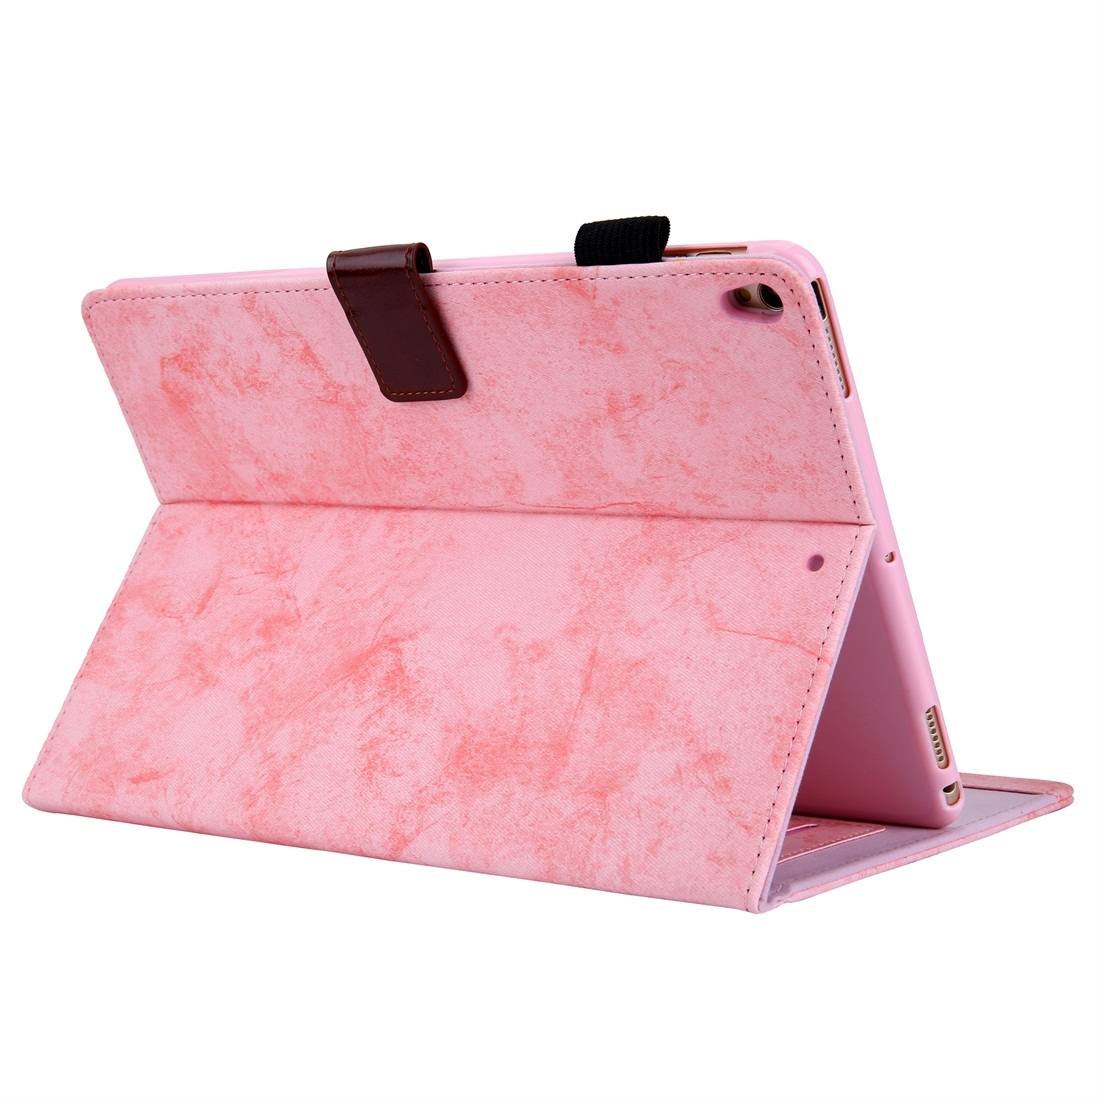 iPad Air 3 Case (10.5 Inch) (2017) Leather Case With Sleeves & Auto Sleep Function (Pink)